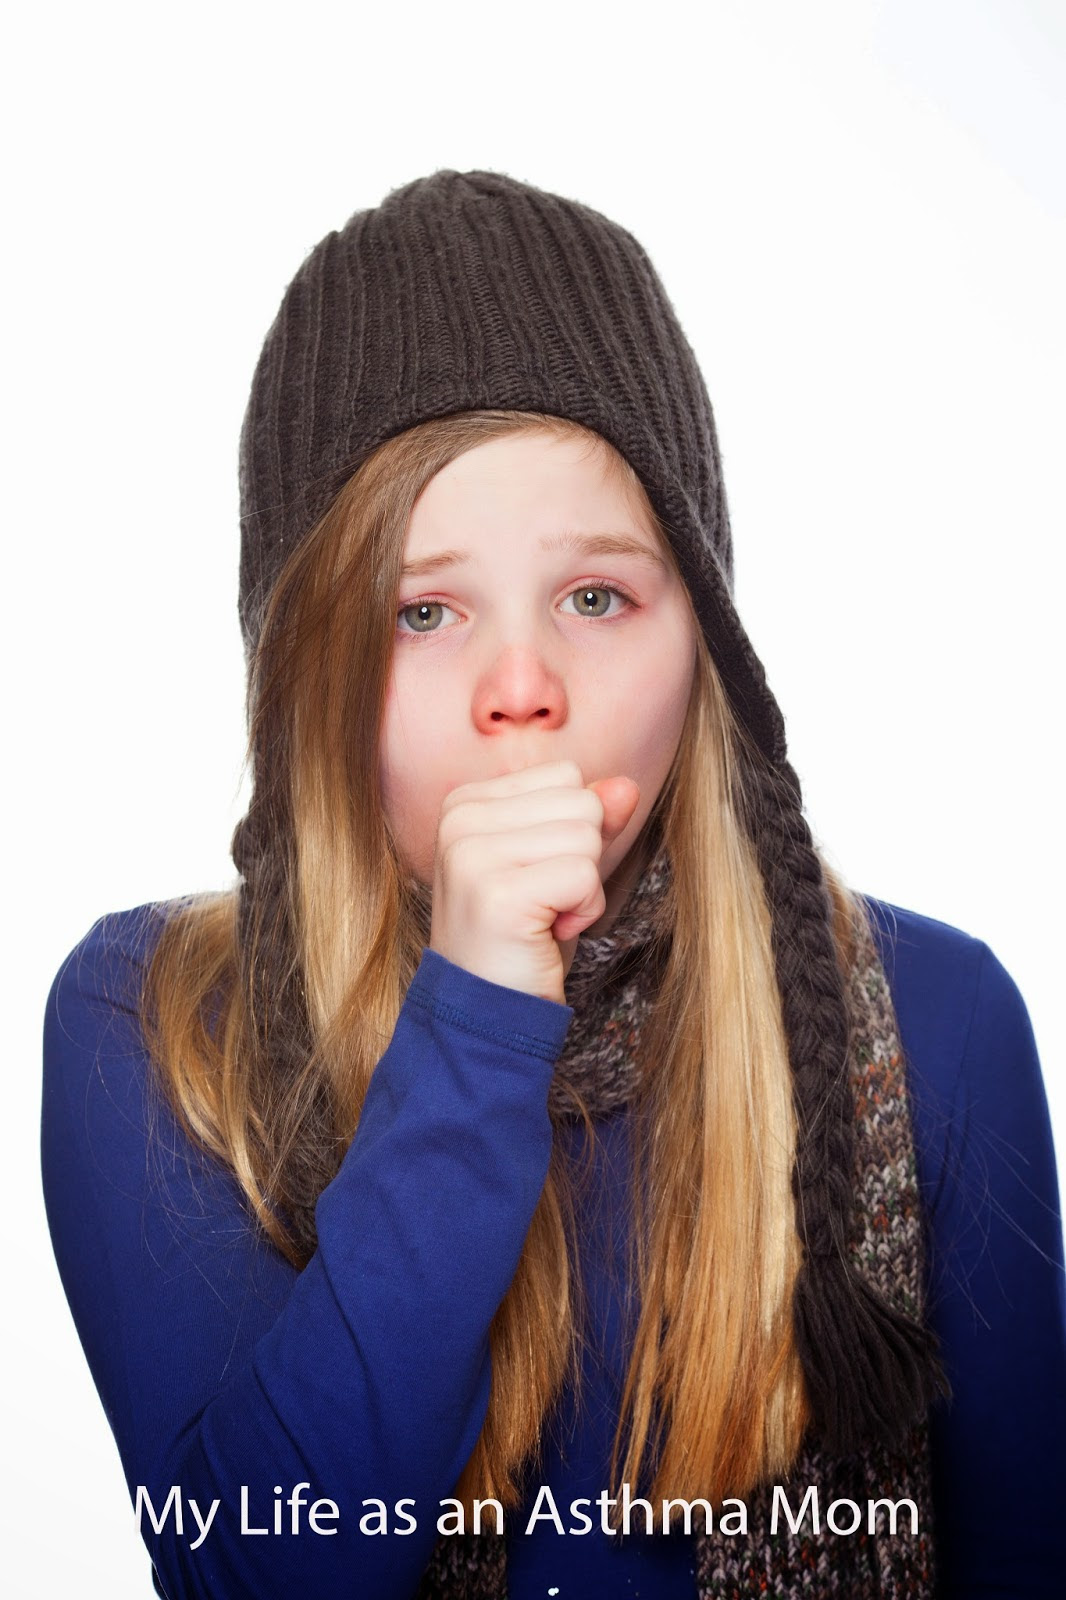 Asthma Coughing Child